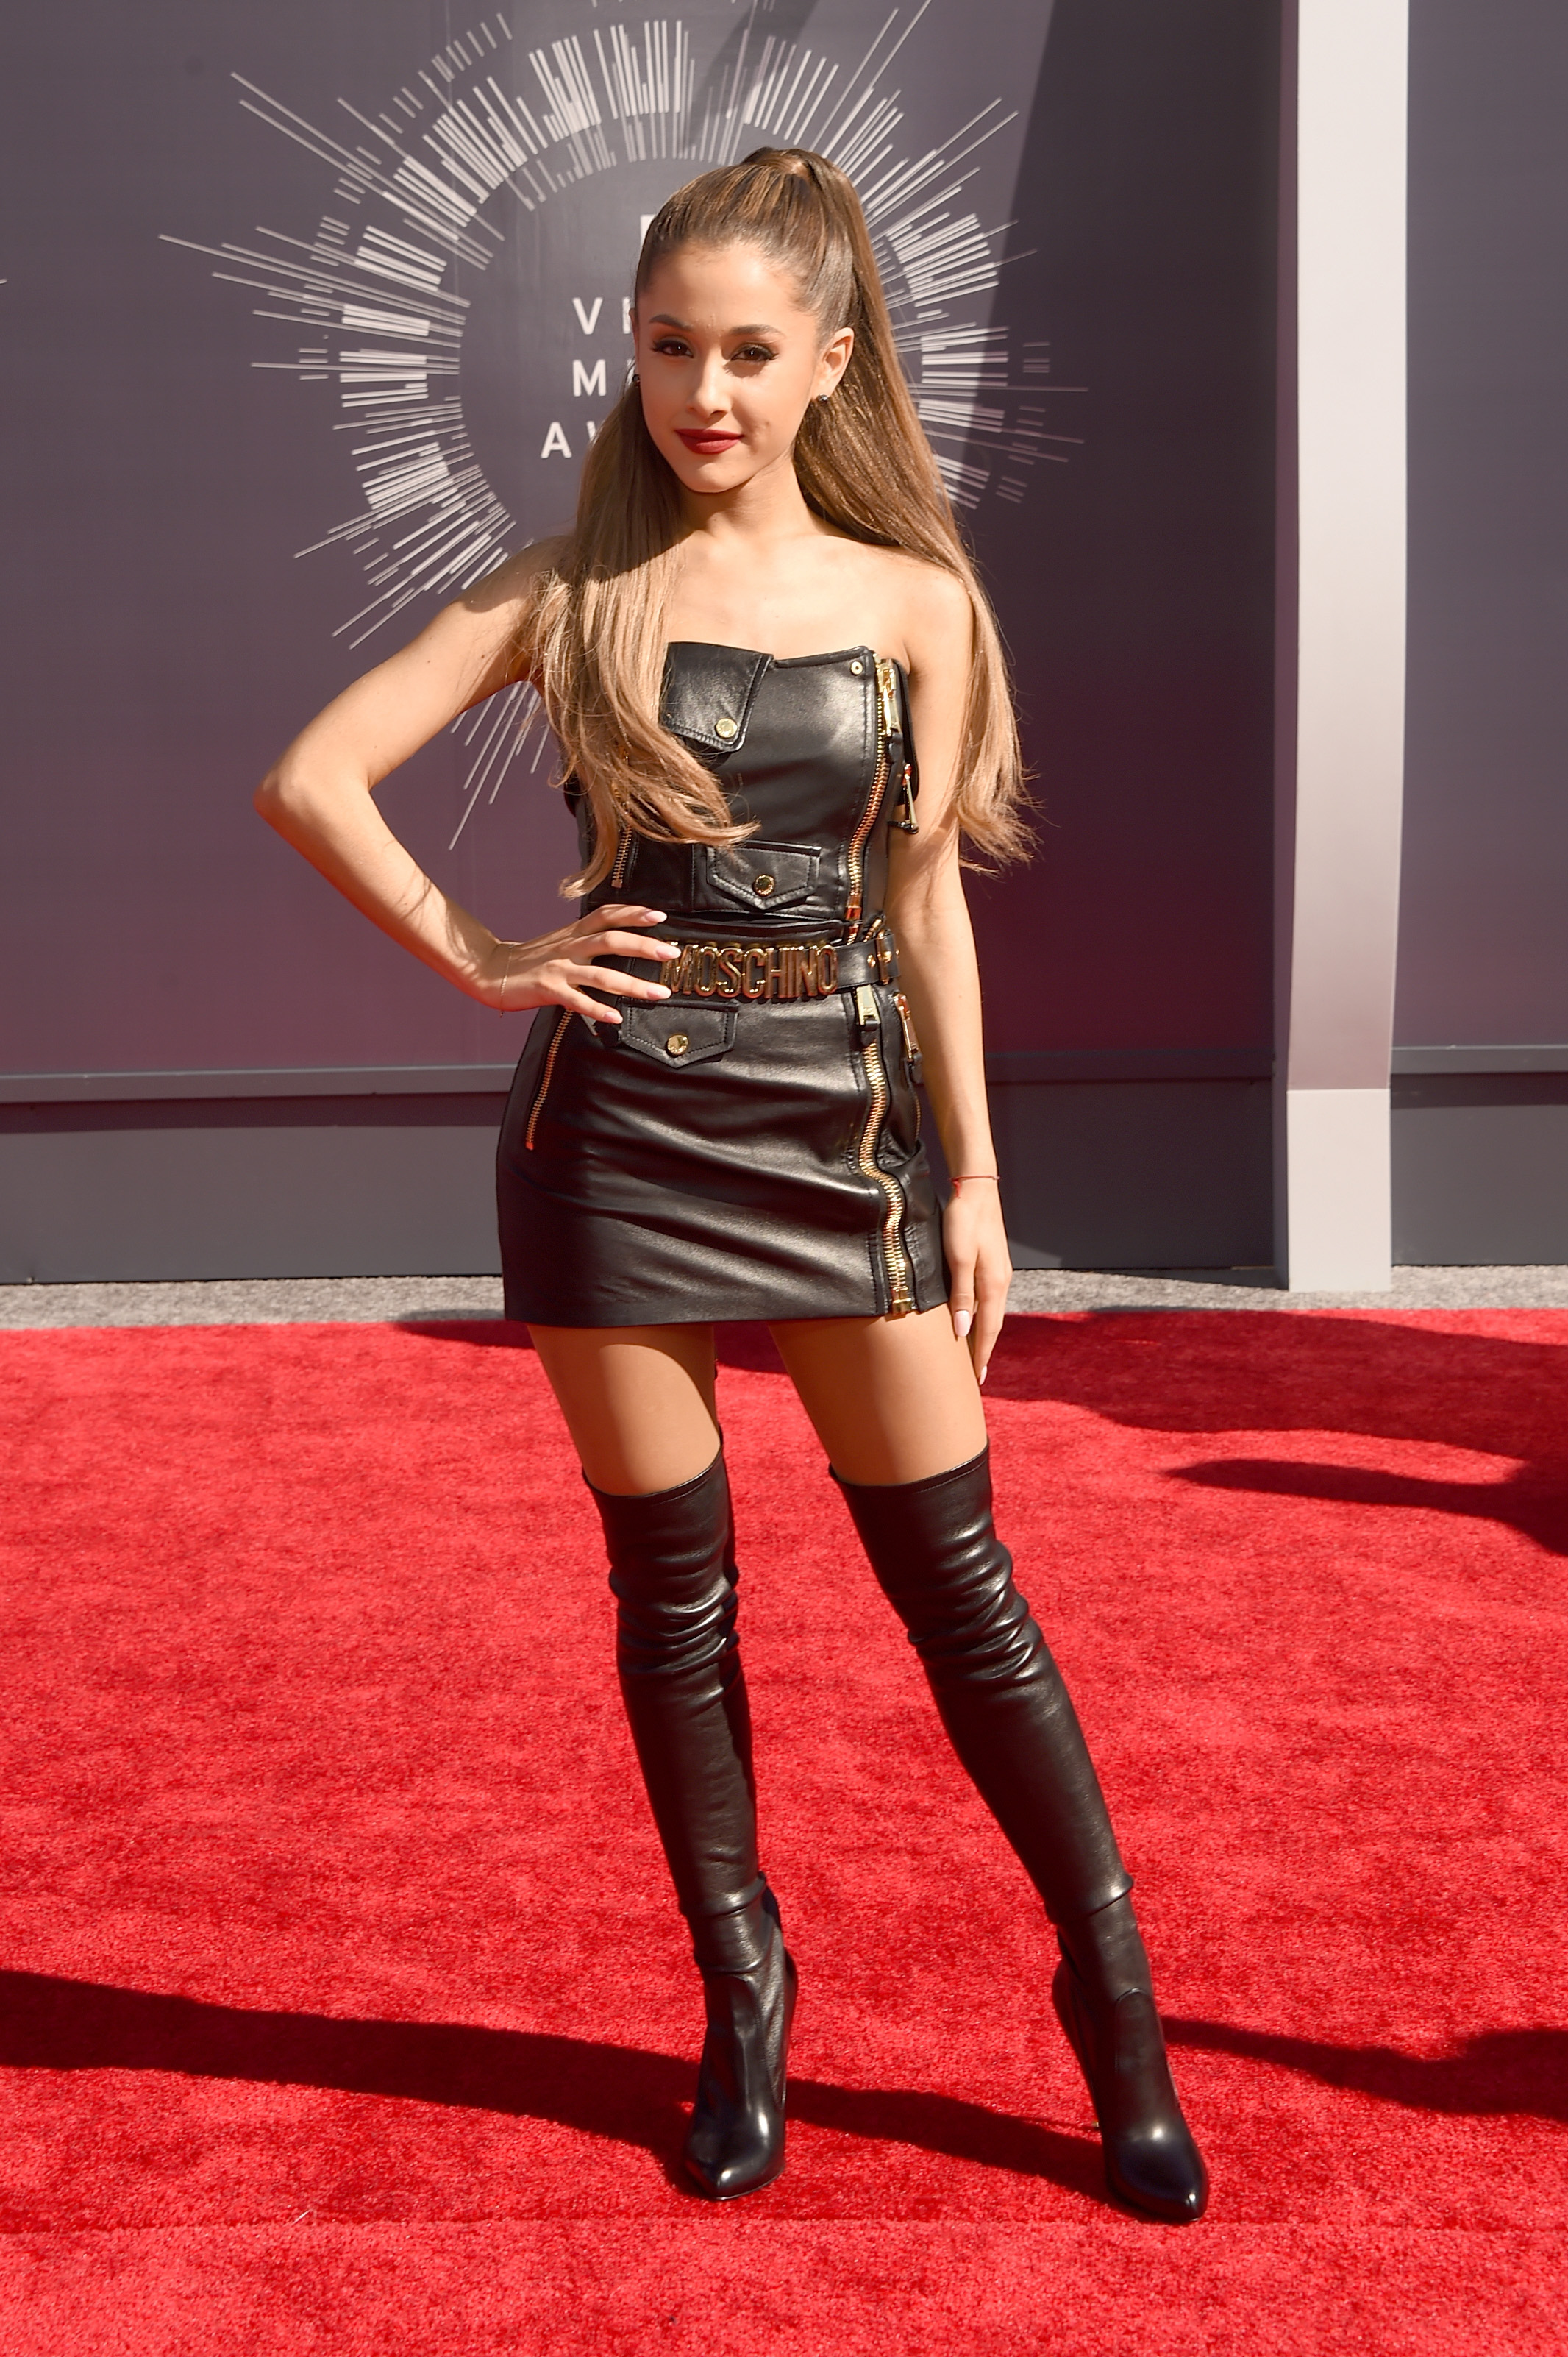 Ariana Grande attends the 2014 MTV Video Music Awards at The Forum on August 24, 2014 in Inglewood, California.